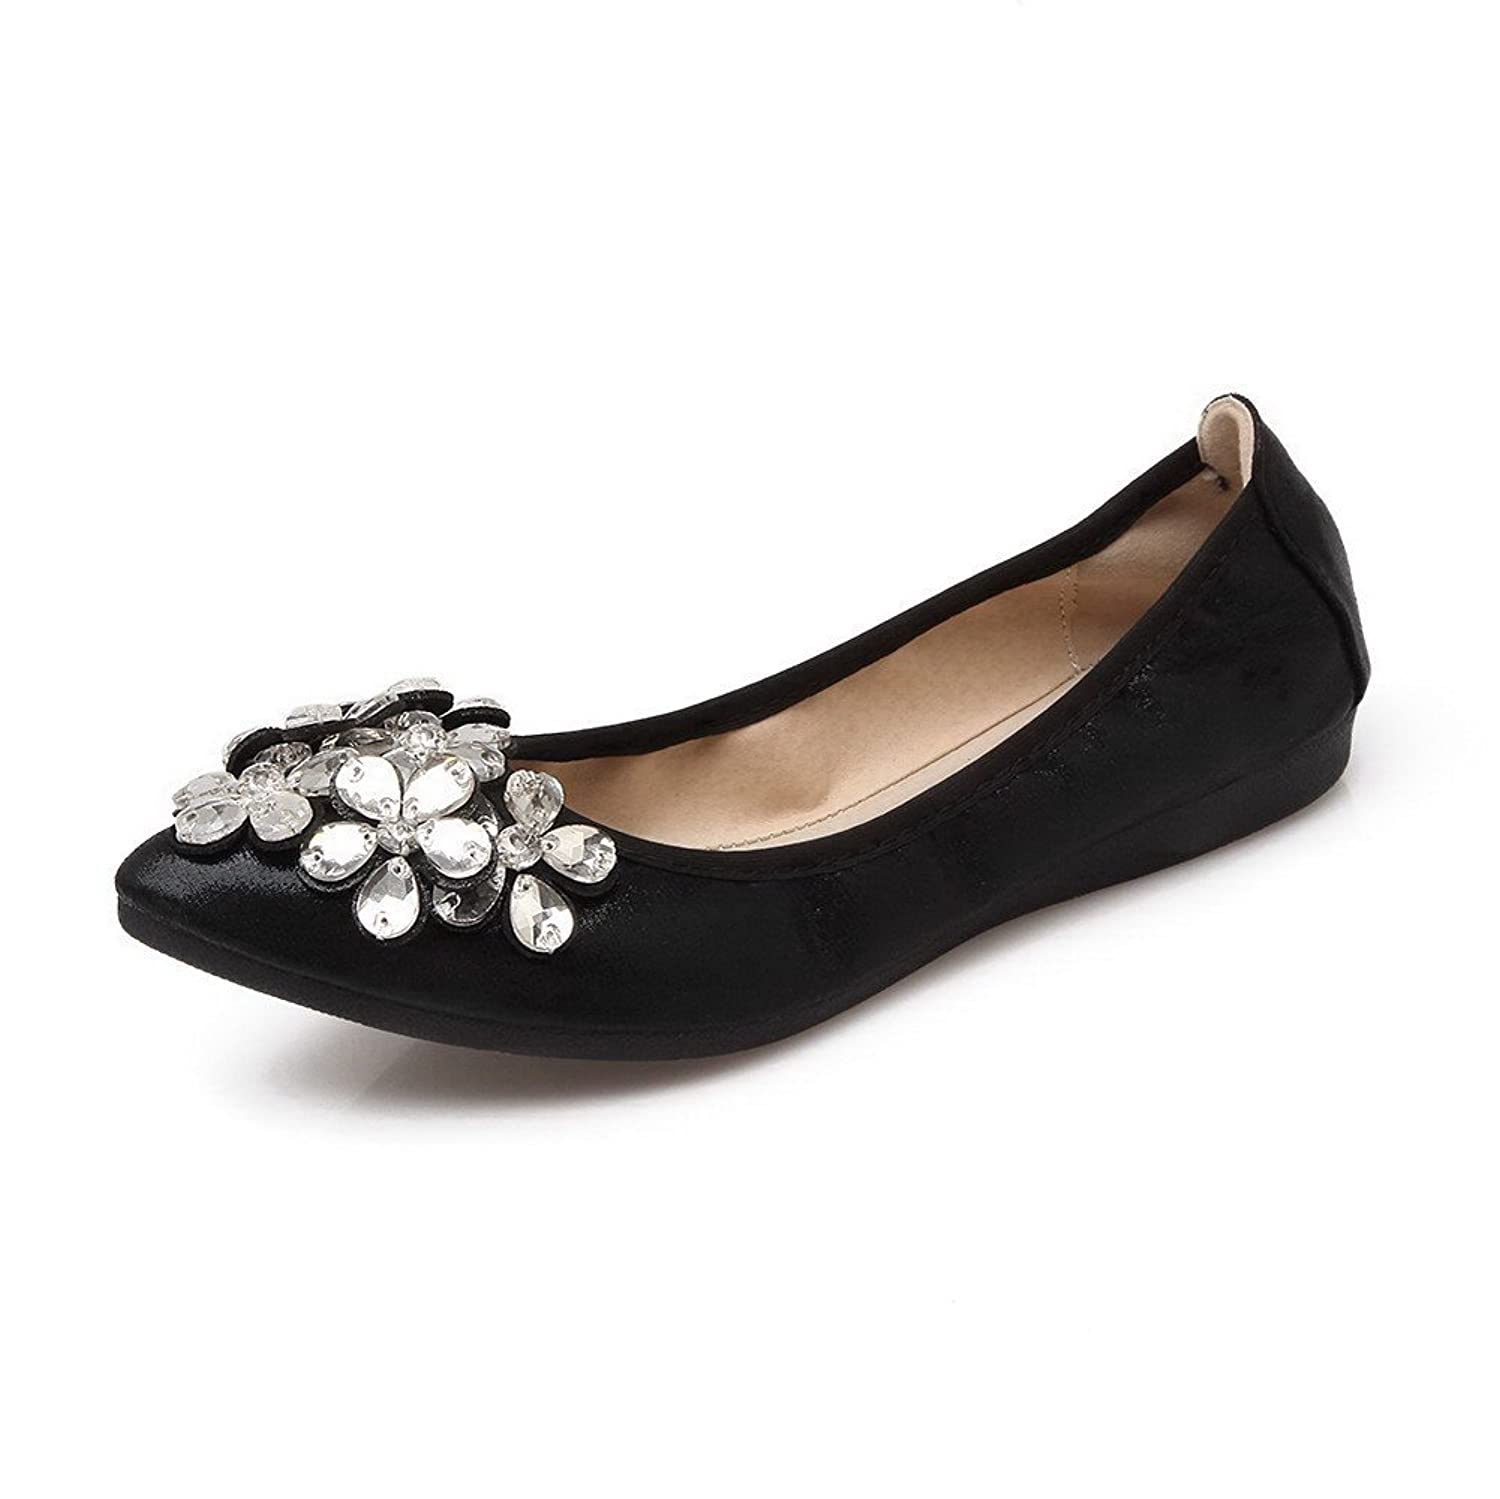 AalarDom Women's Soft Material Solid Pointed-Toe Pull-On Pumps-Shoes